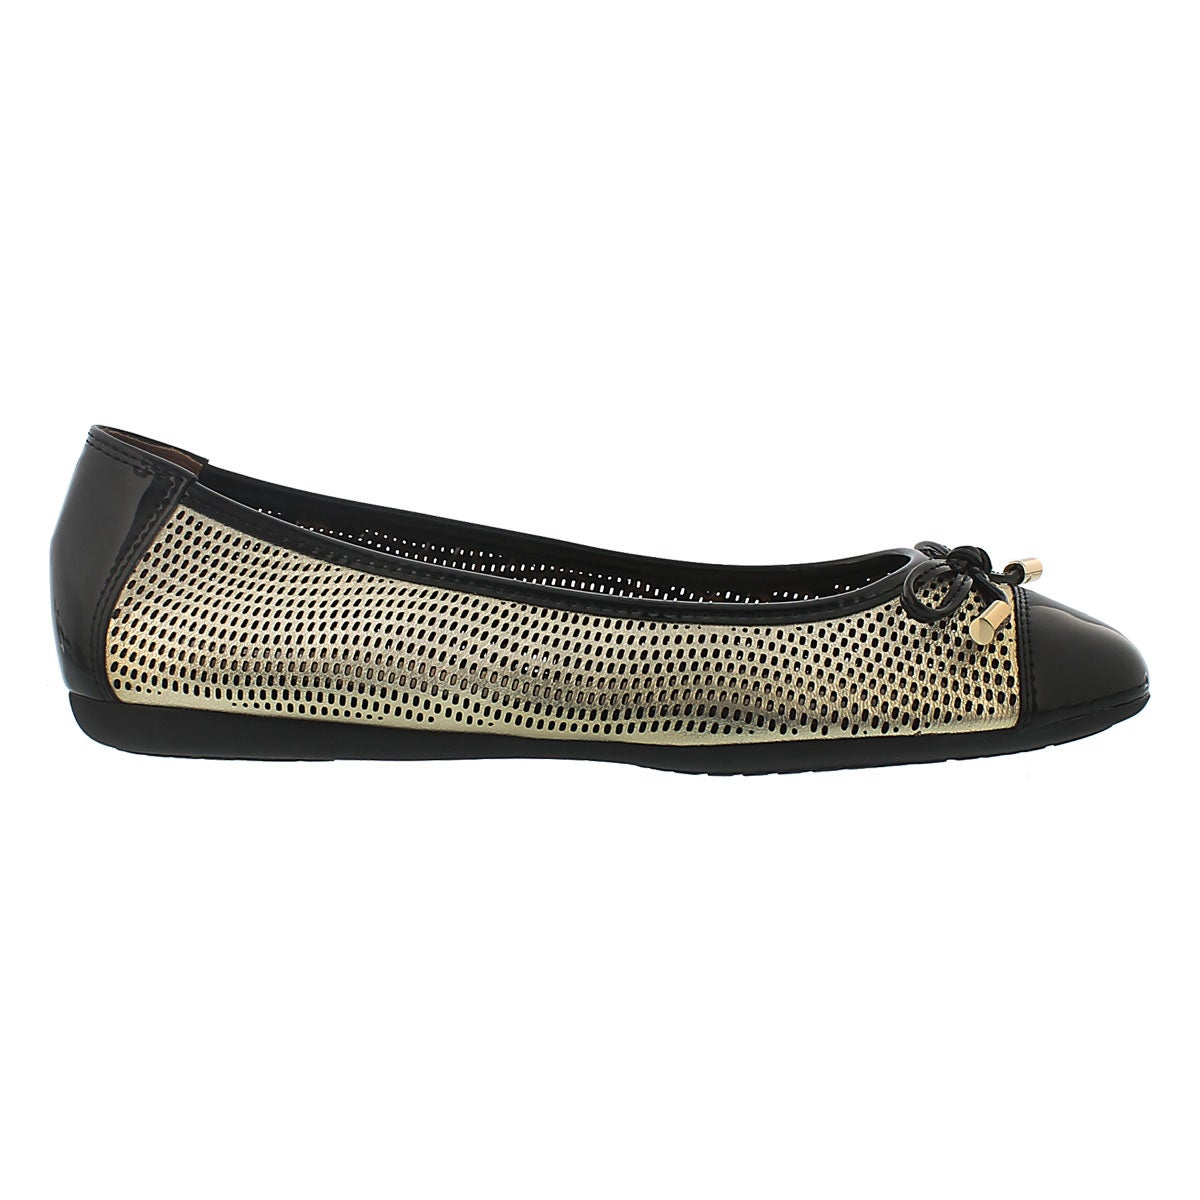 Lds Lola lt gld leather ballerina flat